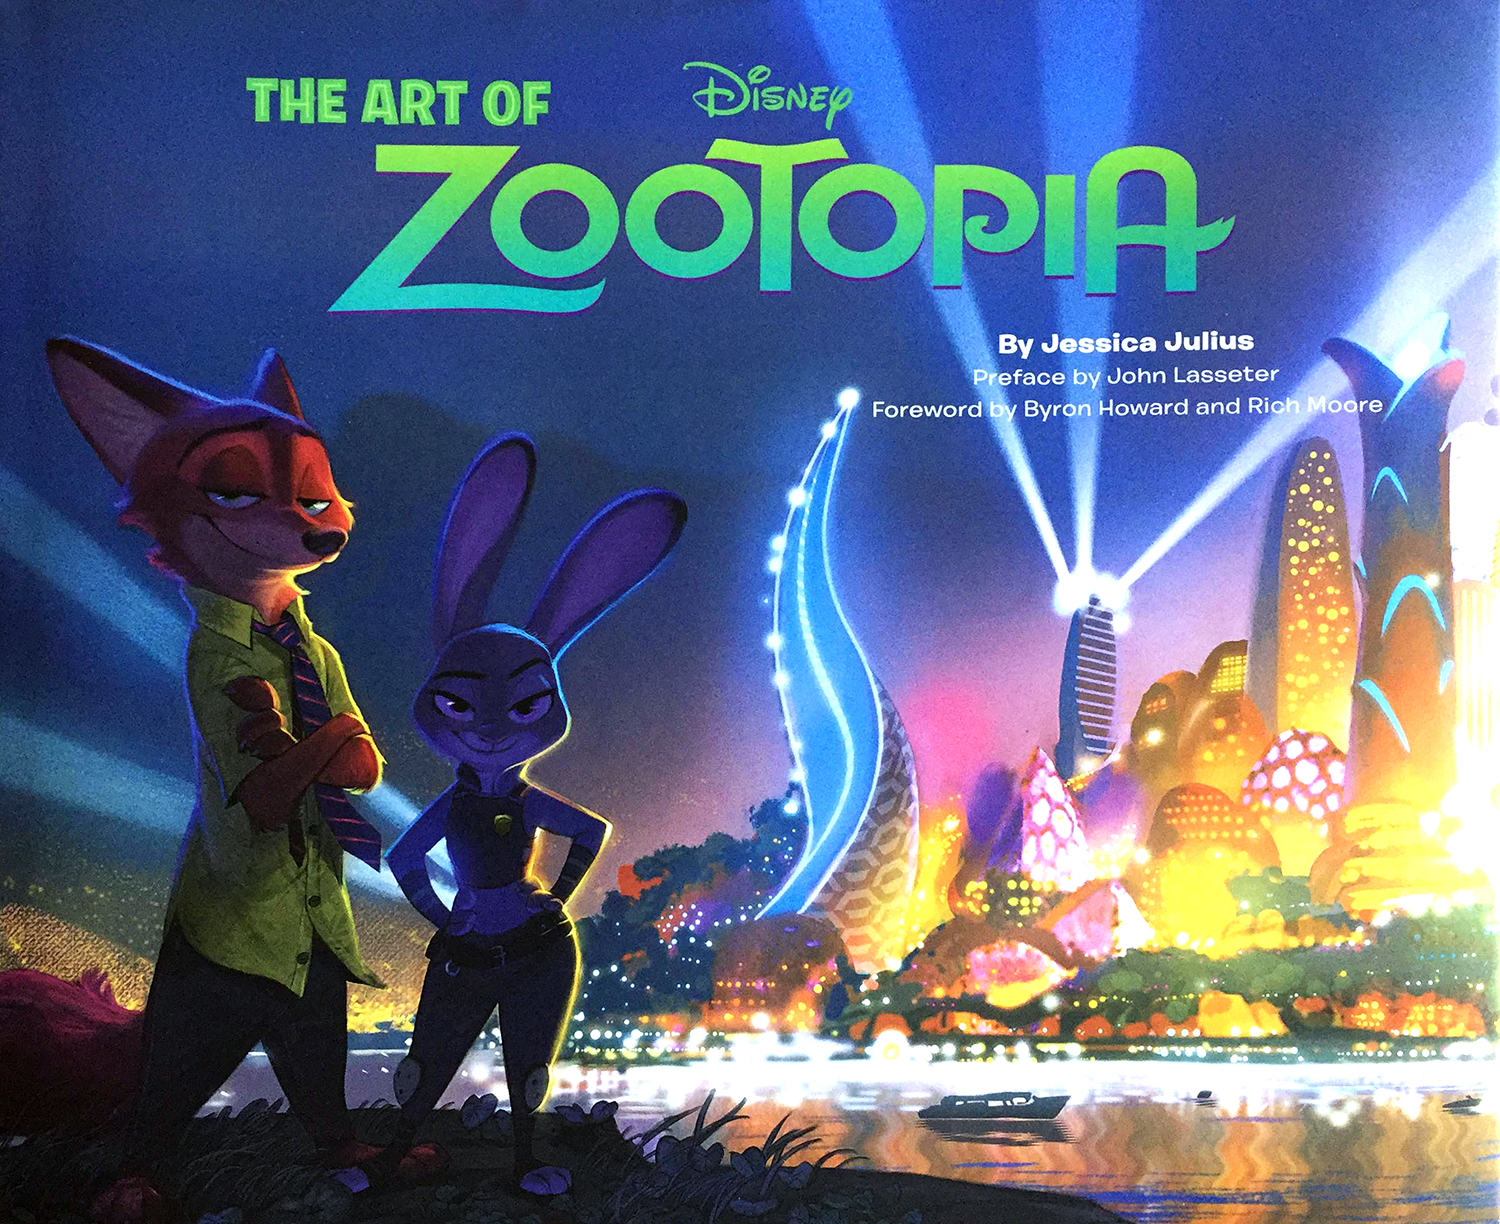 """The Art of Zootopia"" by Jessica Julius."